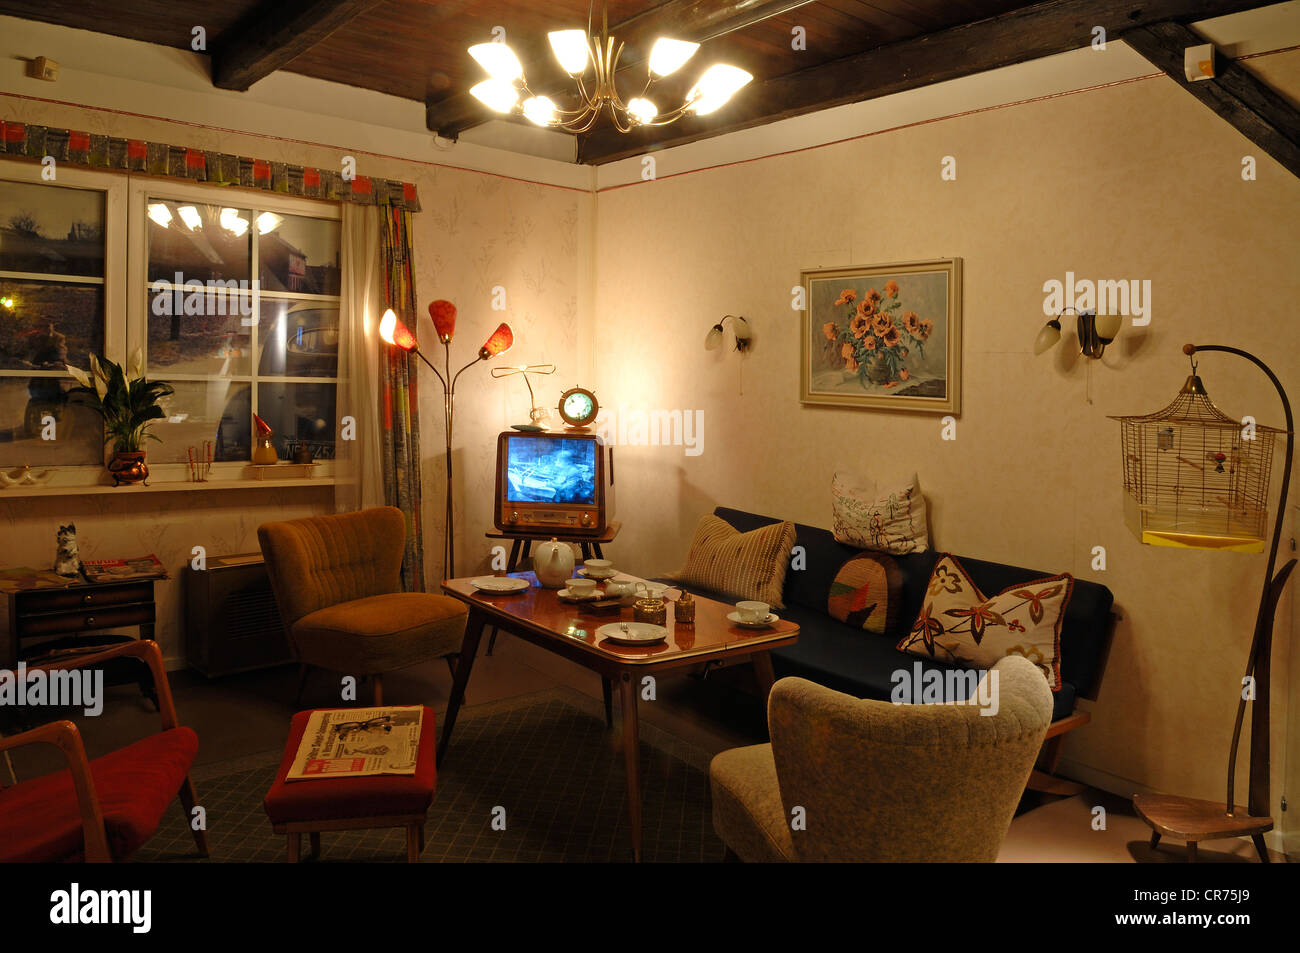 1950s living room stockfotos 1950s living room bilder alamy - Deutsche mobelhersteller wohnzimmer ...